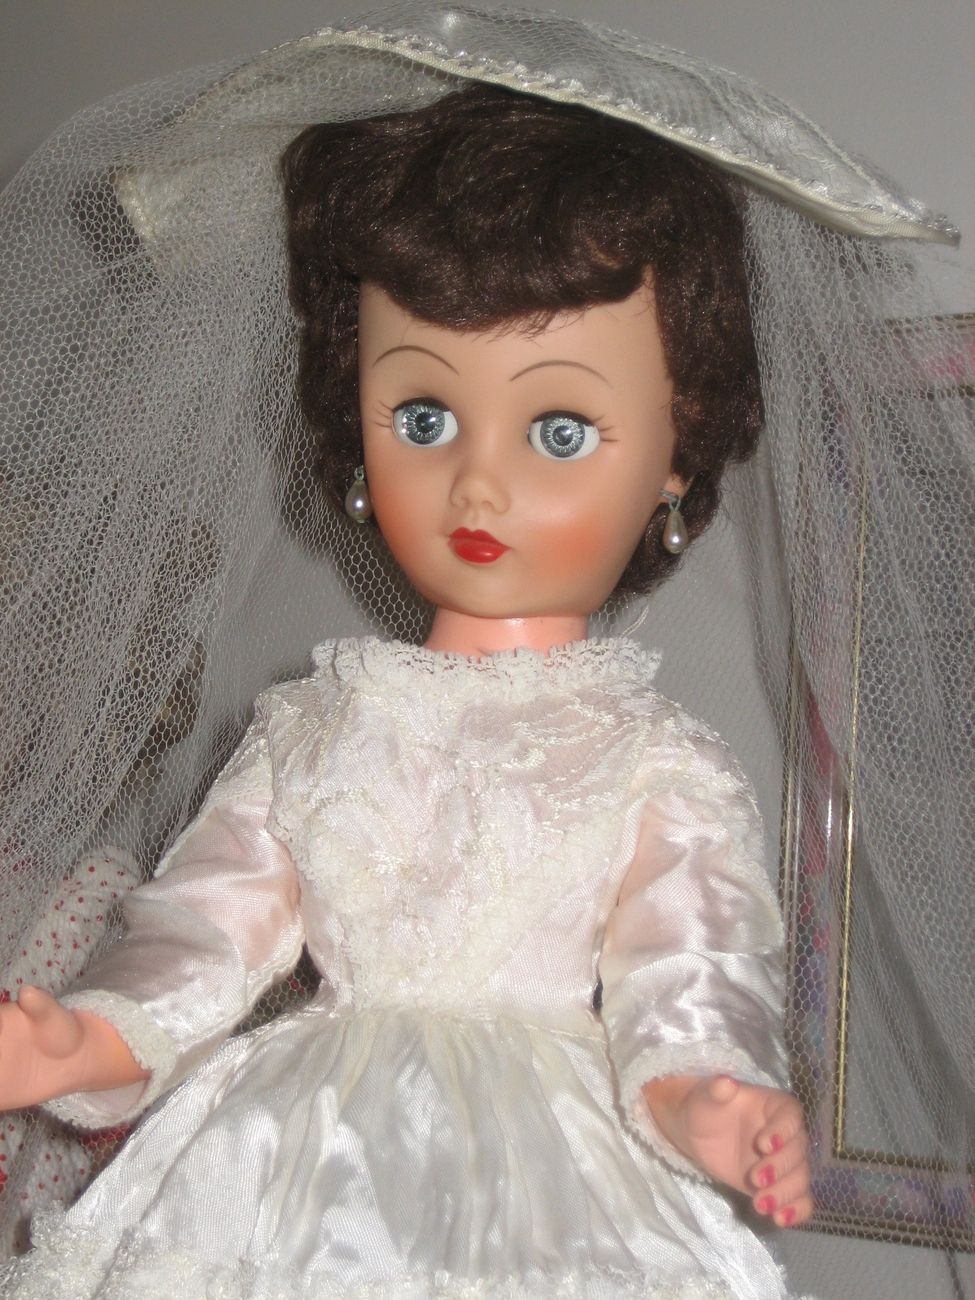 Remember BEGGING for a bride doll when I was a little girl!  My little sis, Jen, got one for her birthday and chopped all her hair off and ruined her clothes...I was SO upset! #bridedolls